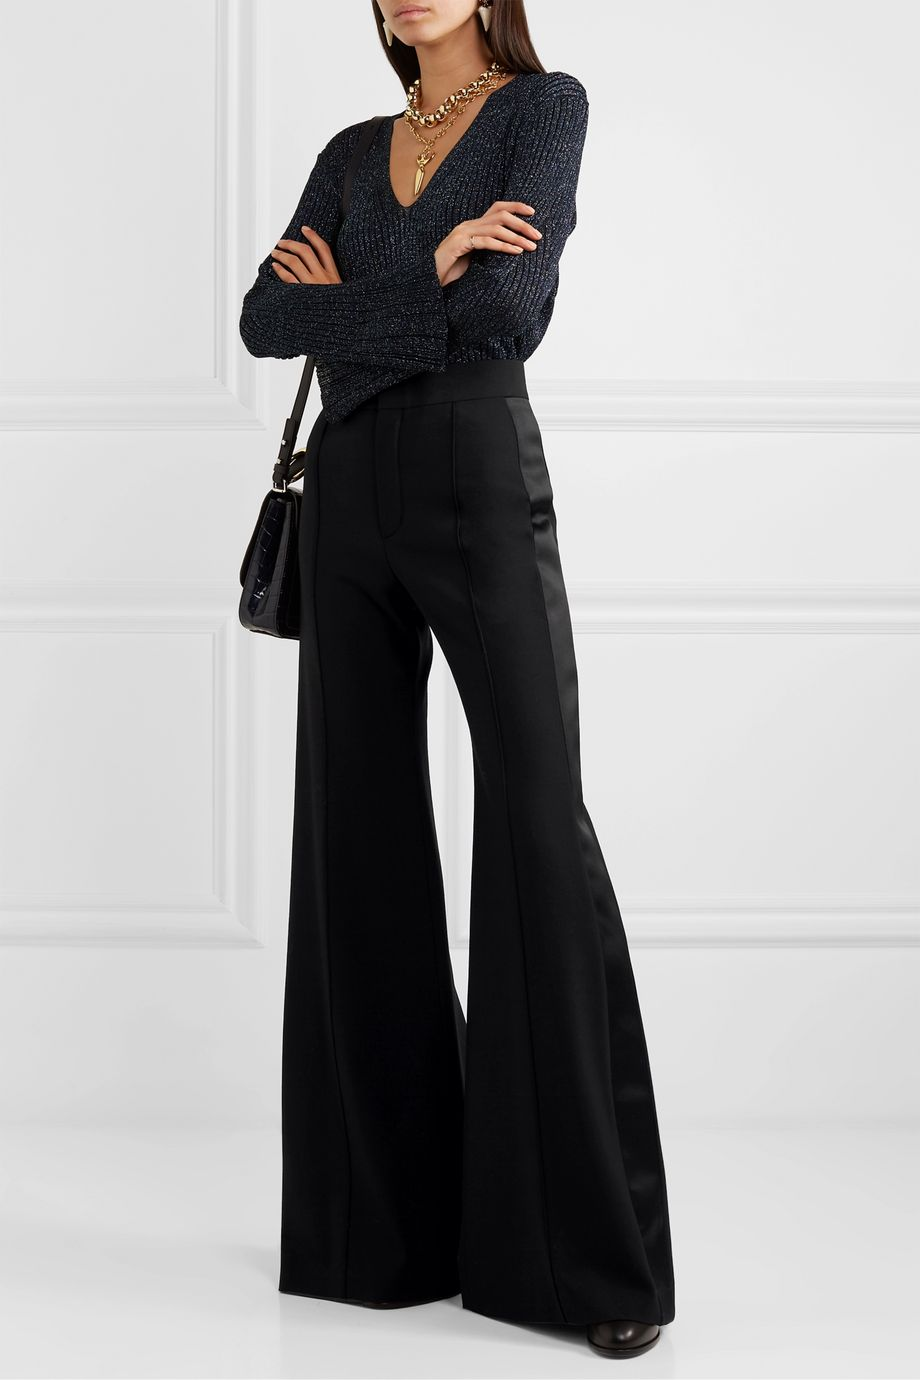 Chloé Silk-blend satin-trimmed wool-blend wide-leg pants